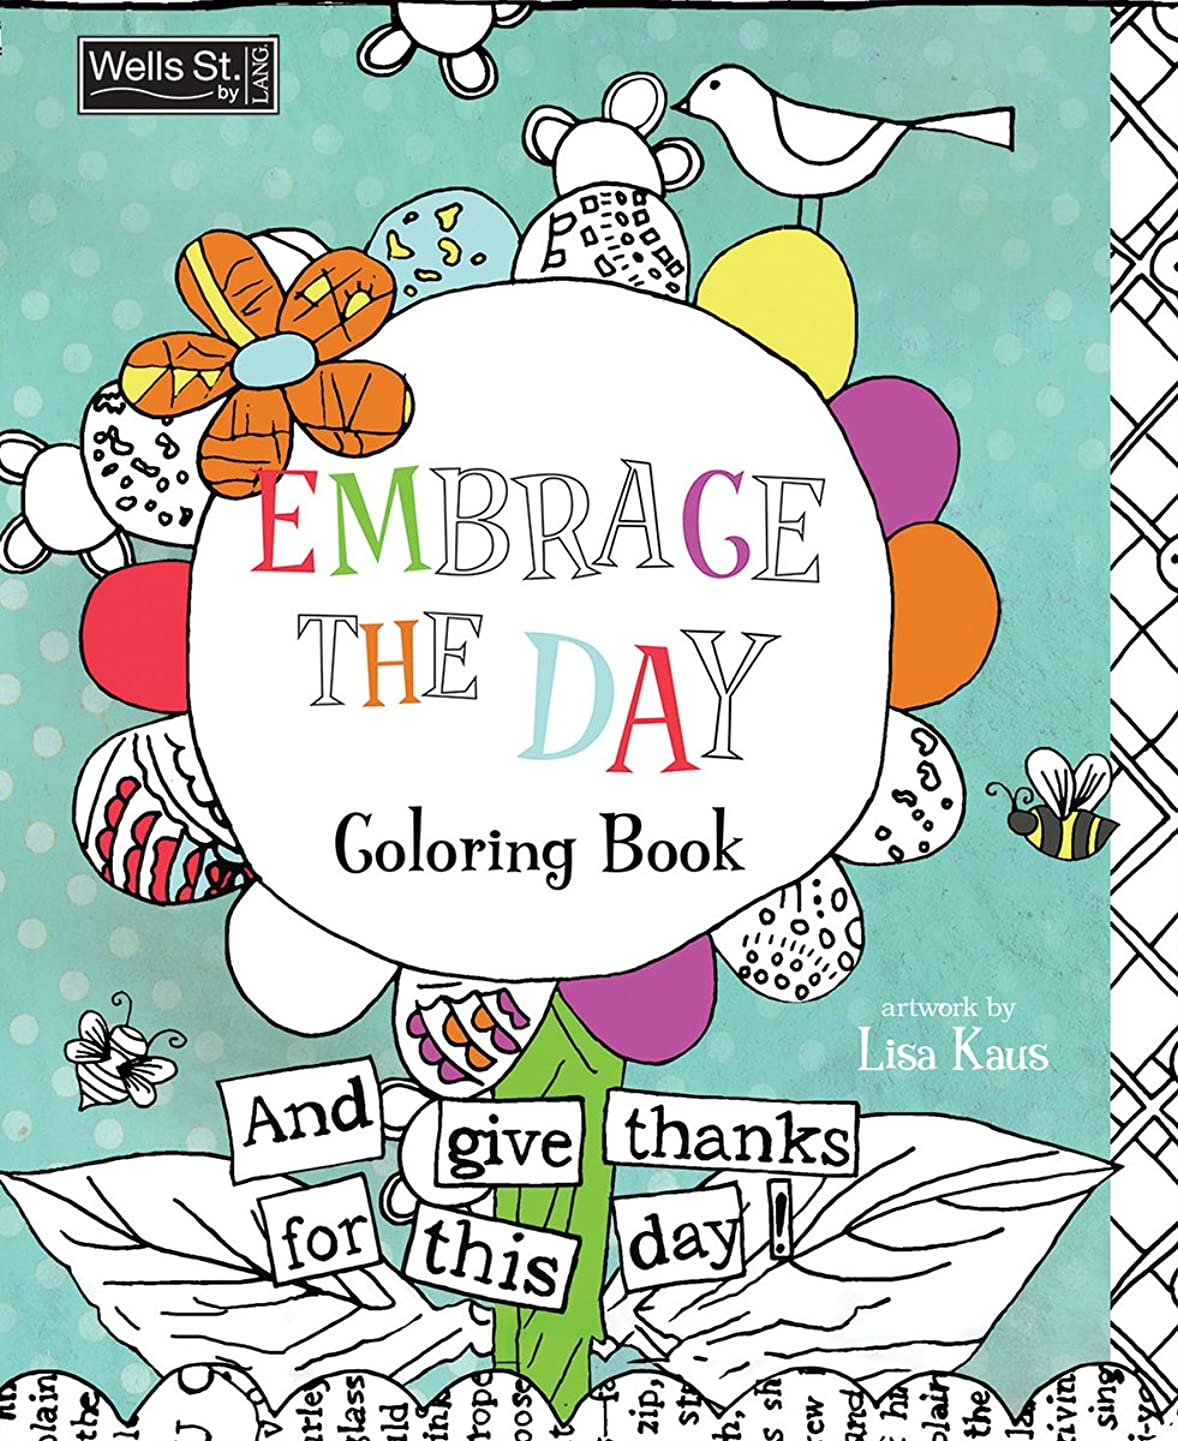 Wells Street by Lang Embrace The Day Adult Coloring Book by Lisa Kaus, 7.375 x 9.25 inches  (6093003)